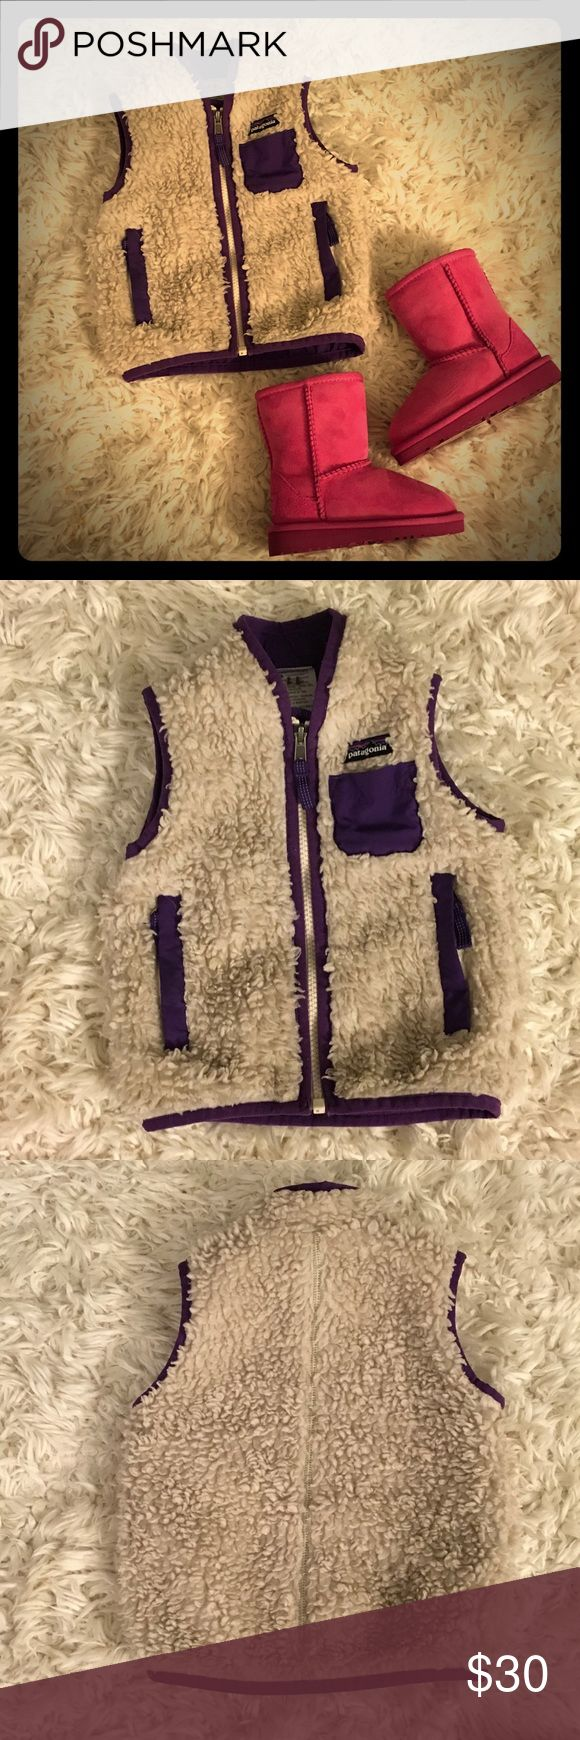 Patagonia Retro High Pile Fleece Vest -Little Girl This Patagonia vest is in great condition!  It is adorable, very cute and comfortable. This is the perfect piece for layering or wearing under another coat.  It is slightly matted due to was and wear.  It is reversible. What a perfect piece to add to your little ones closet. Patagonia Jackets & Coats Vests